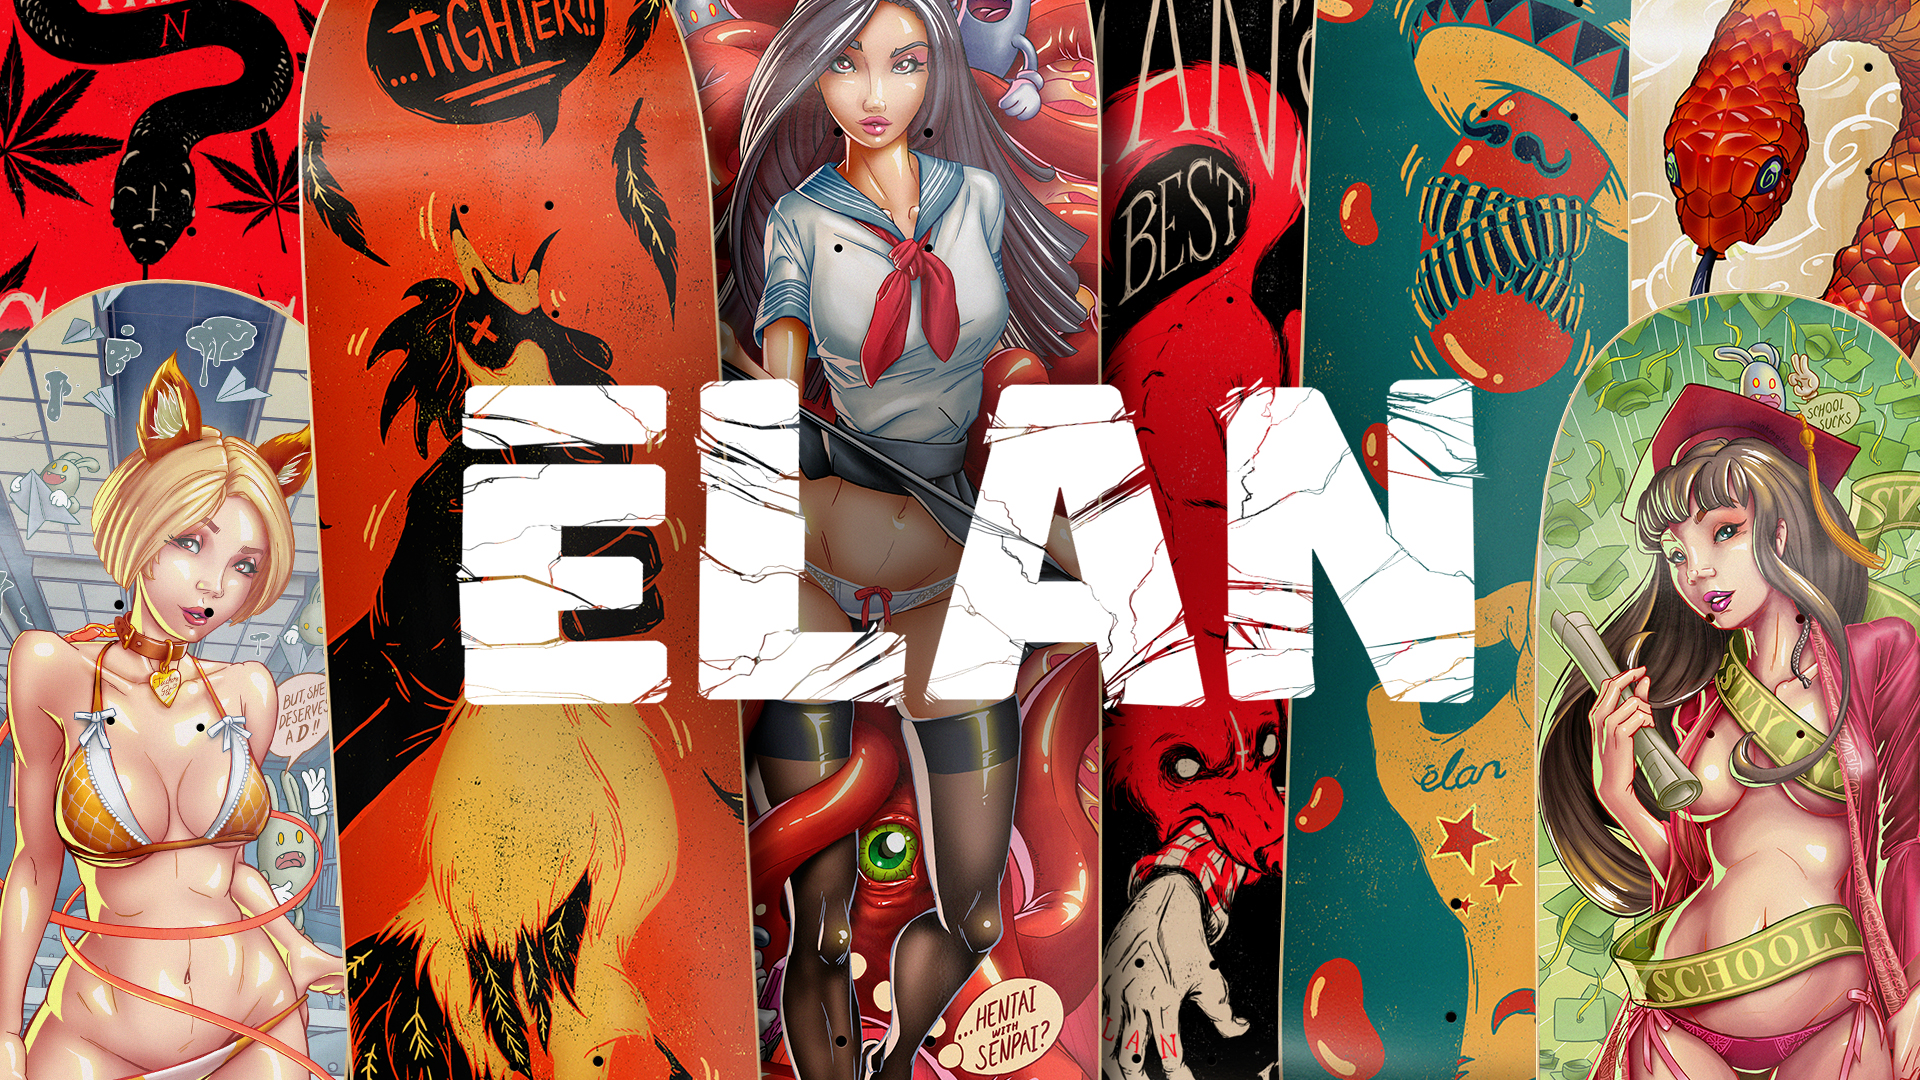 Elan Skateboards